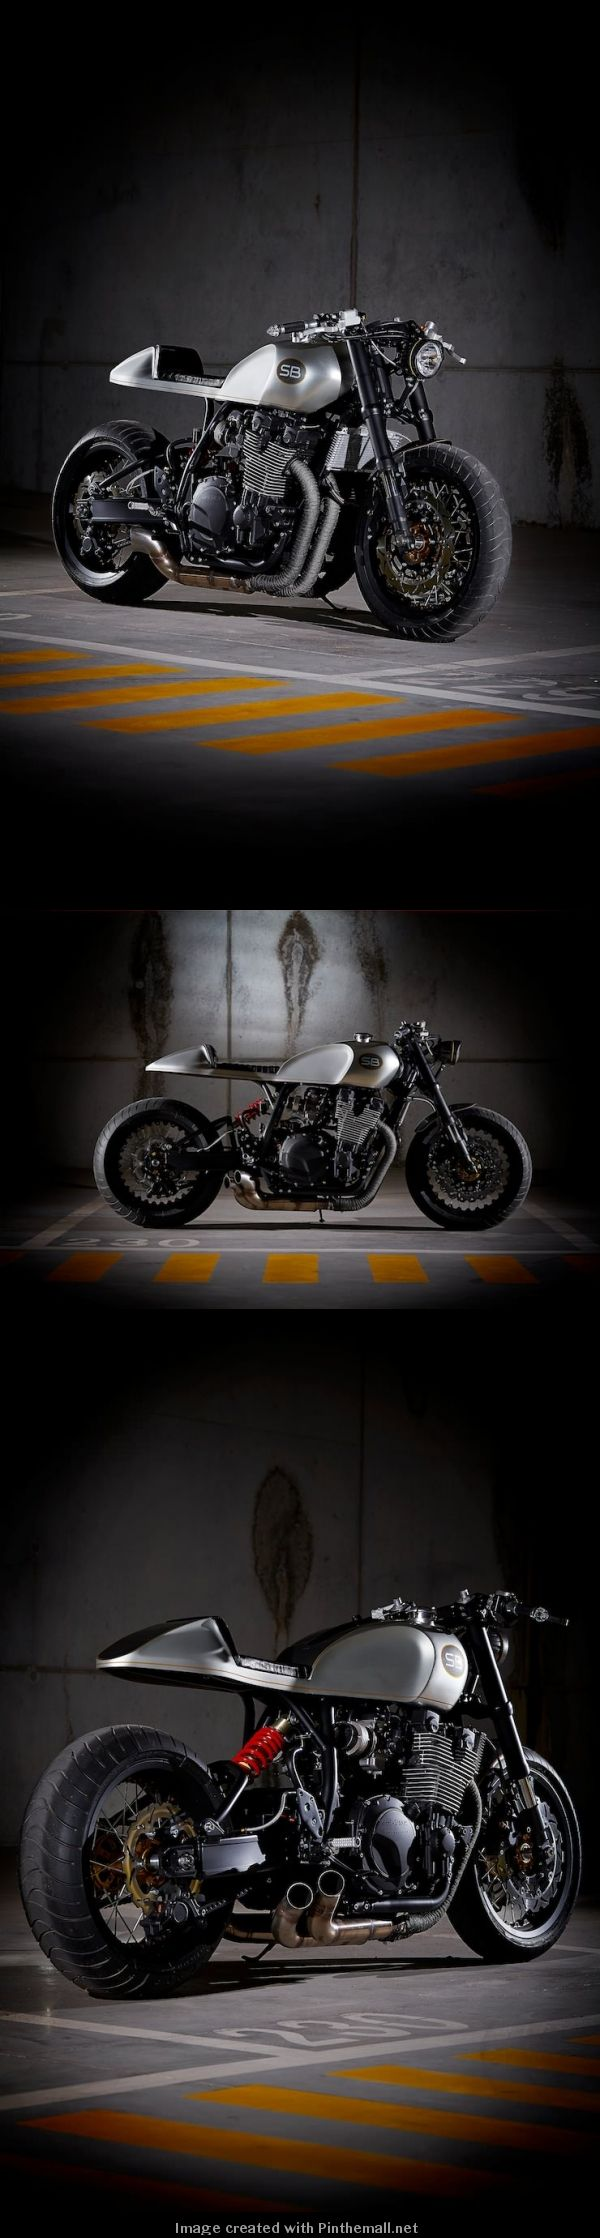 Yamaha XJR 1200 by it RoCkS!bikes